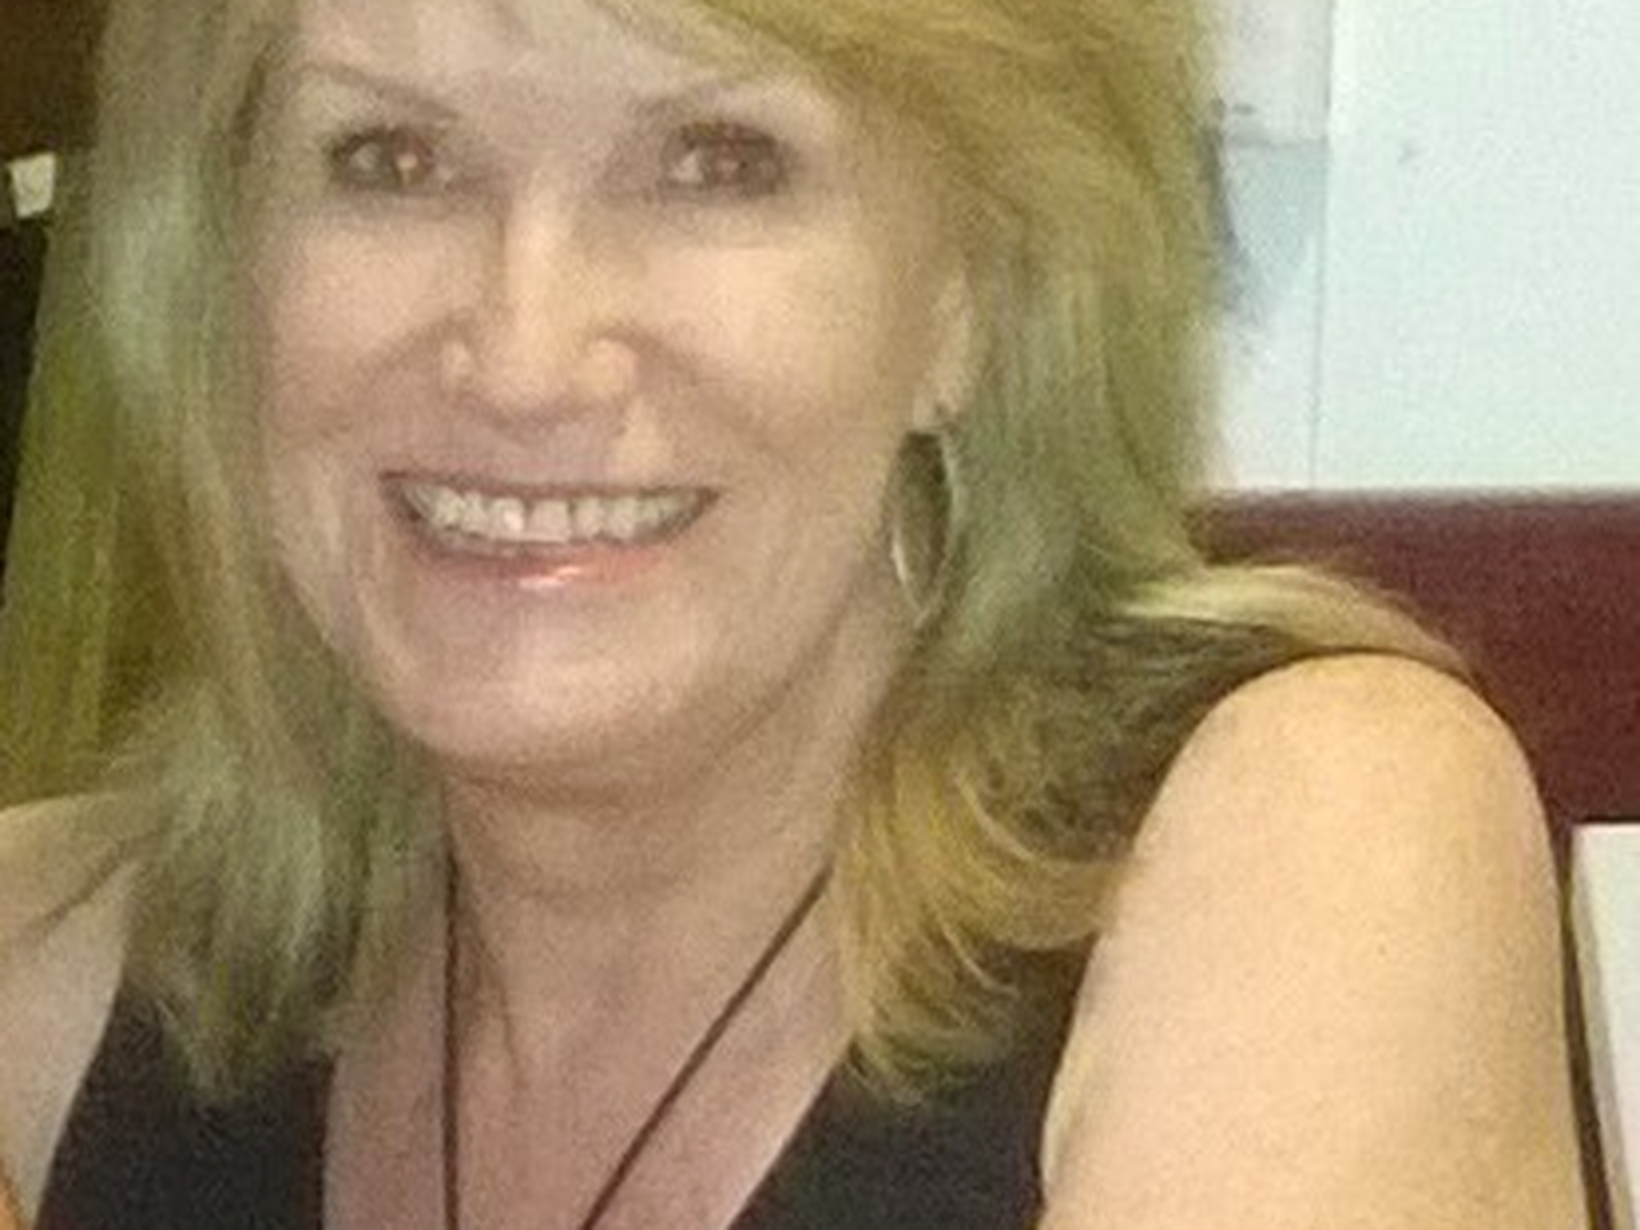 Chrissie from Sydney, New South Wales, Australia